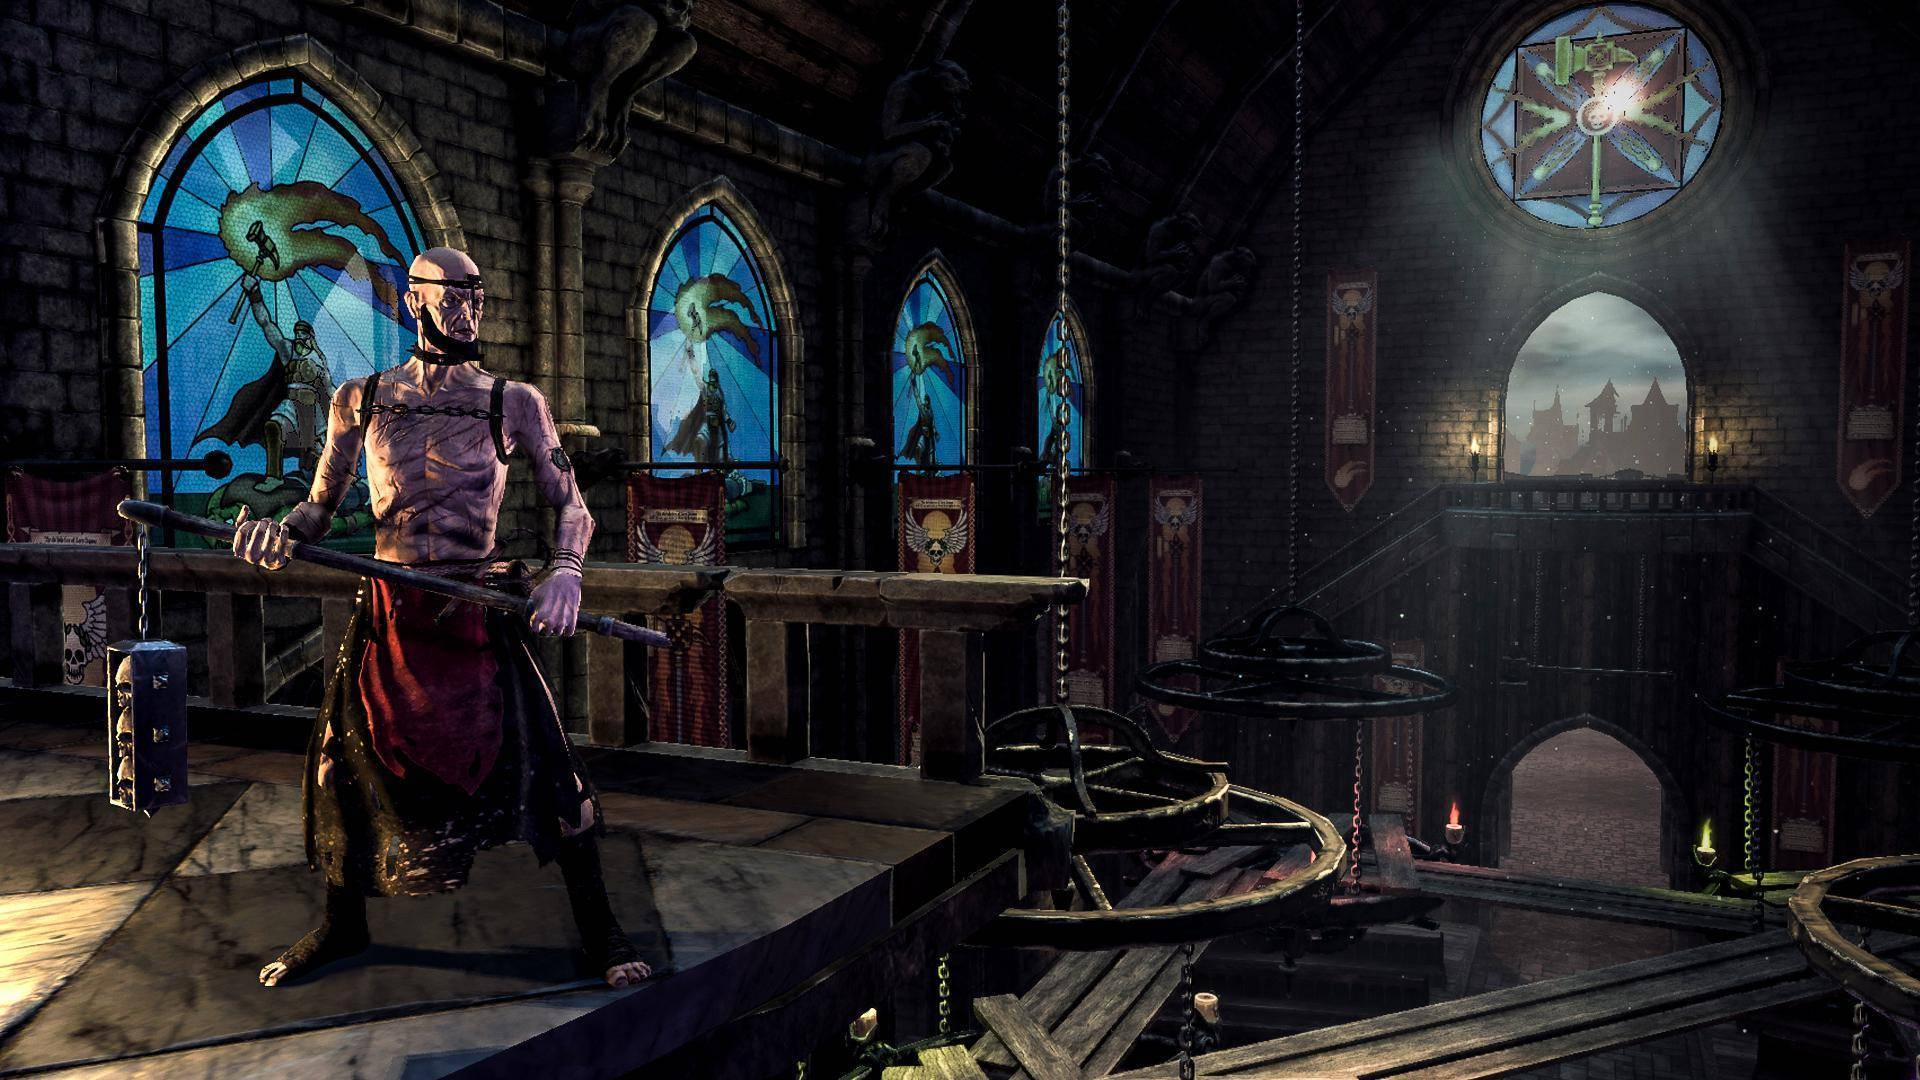 Trailer von Mordheim City of the Damned Witch Hunters DLC  anschauen